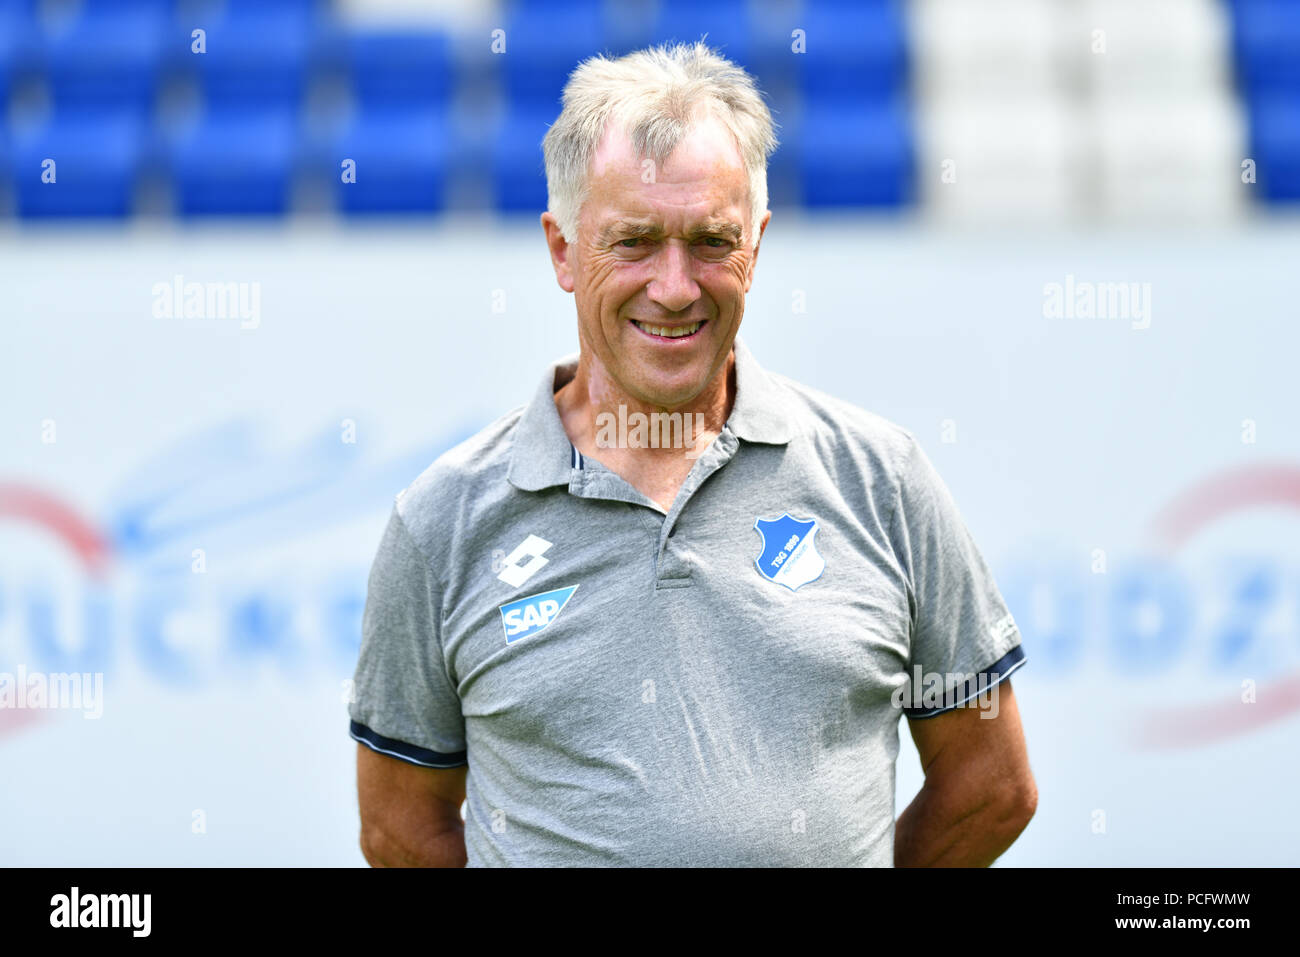 German Bundesliga, official photocall TSG 1899 Hoffenheim for season 2018/19 in Sinsheim, Germany: kitman Heinz Seyfert Photo: Uwe Anspach/dpa  | usage worldwide - Stock Image